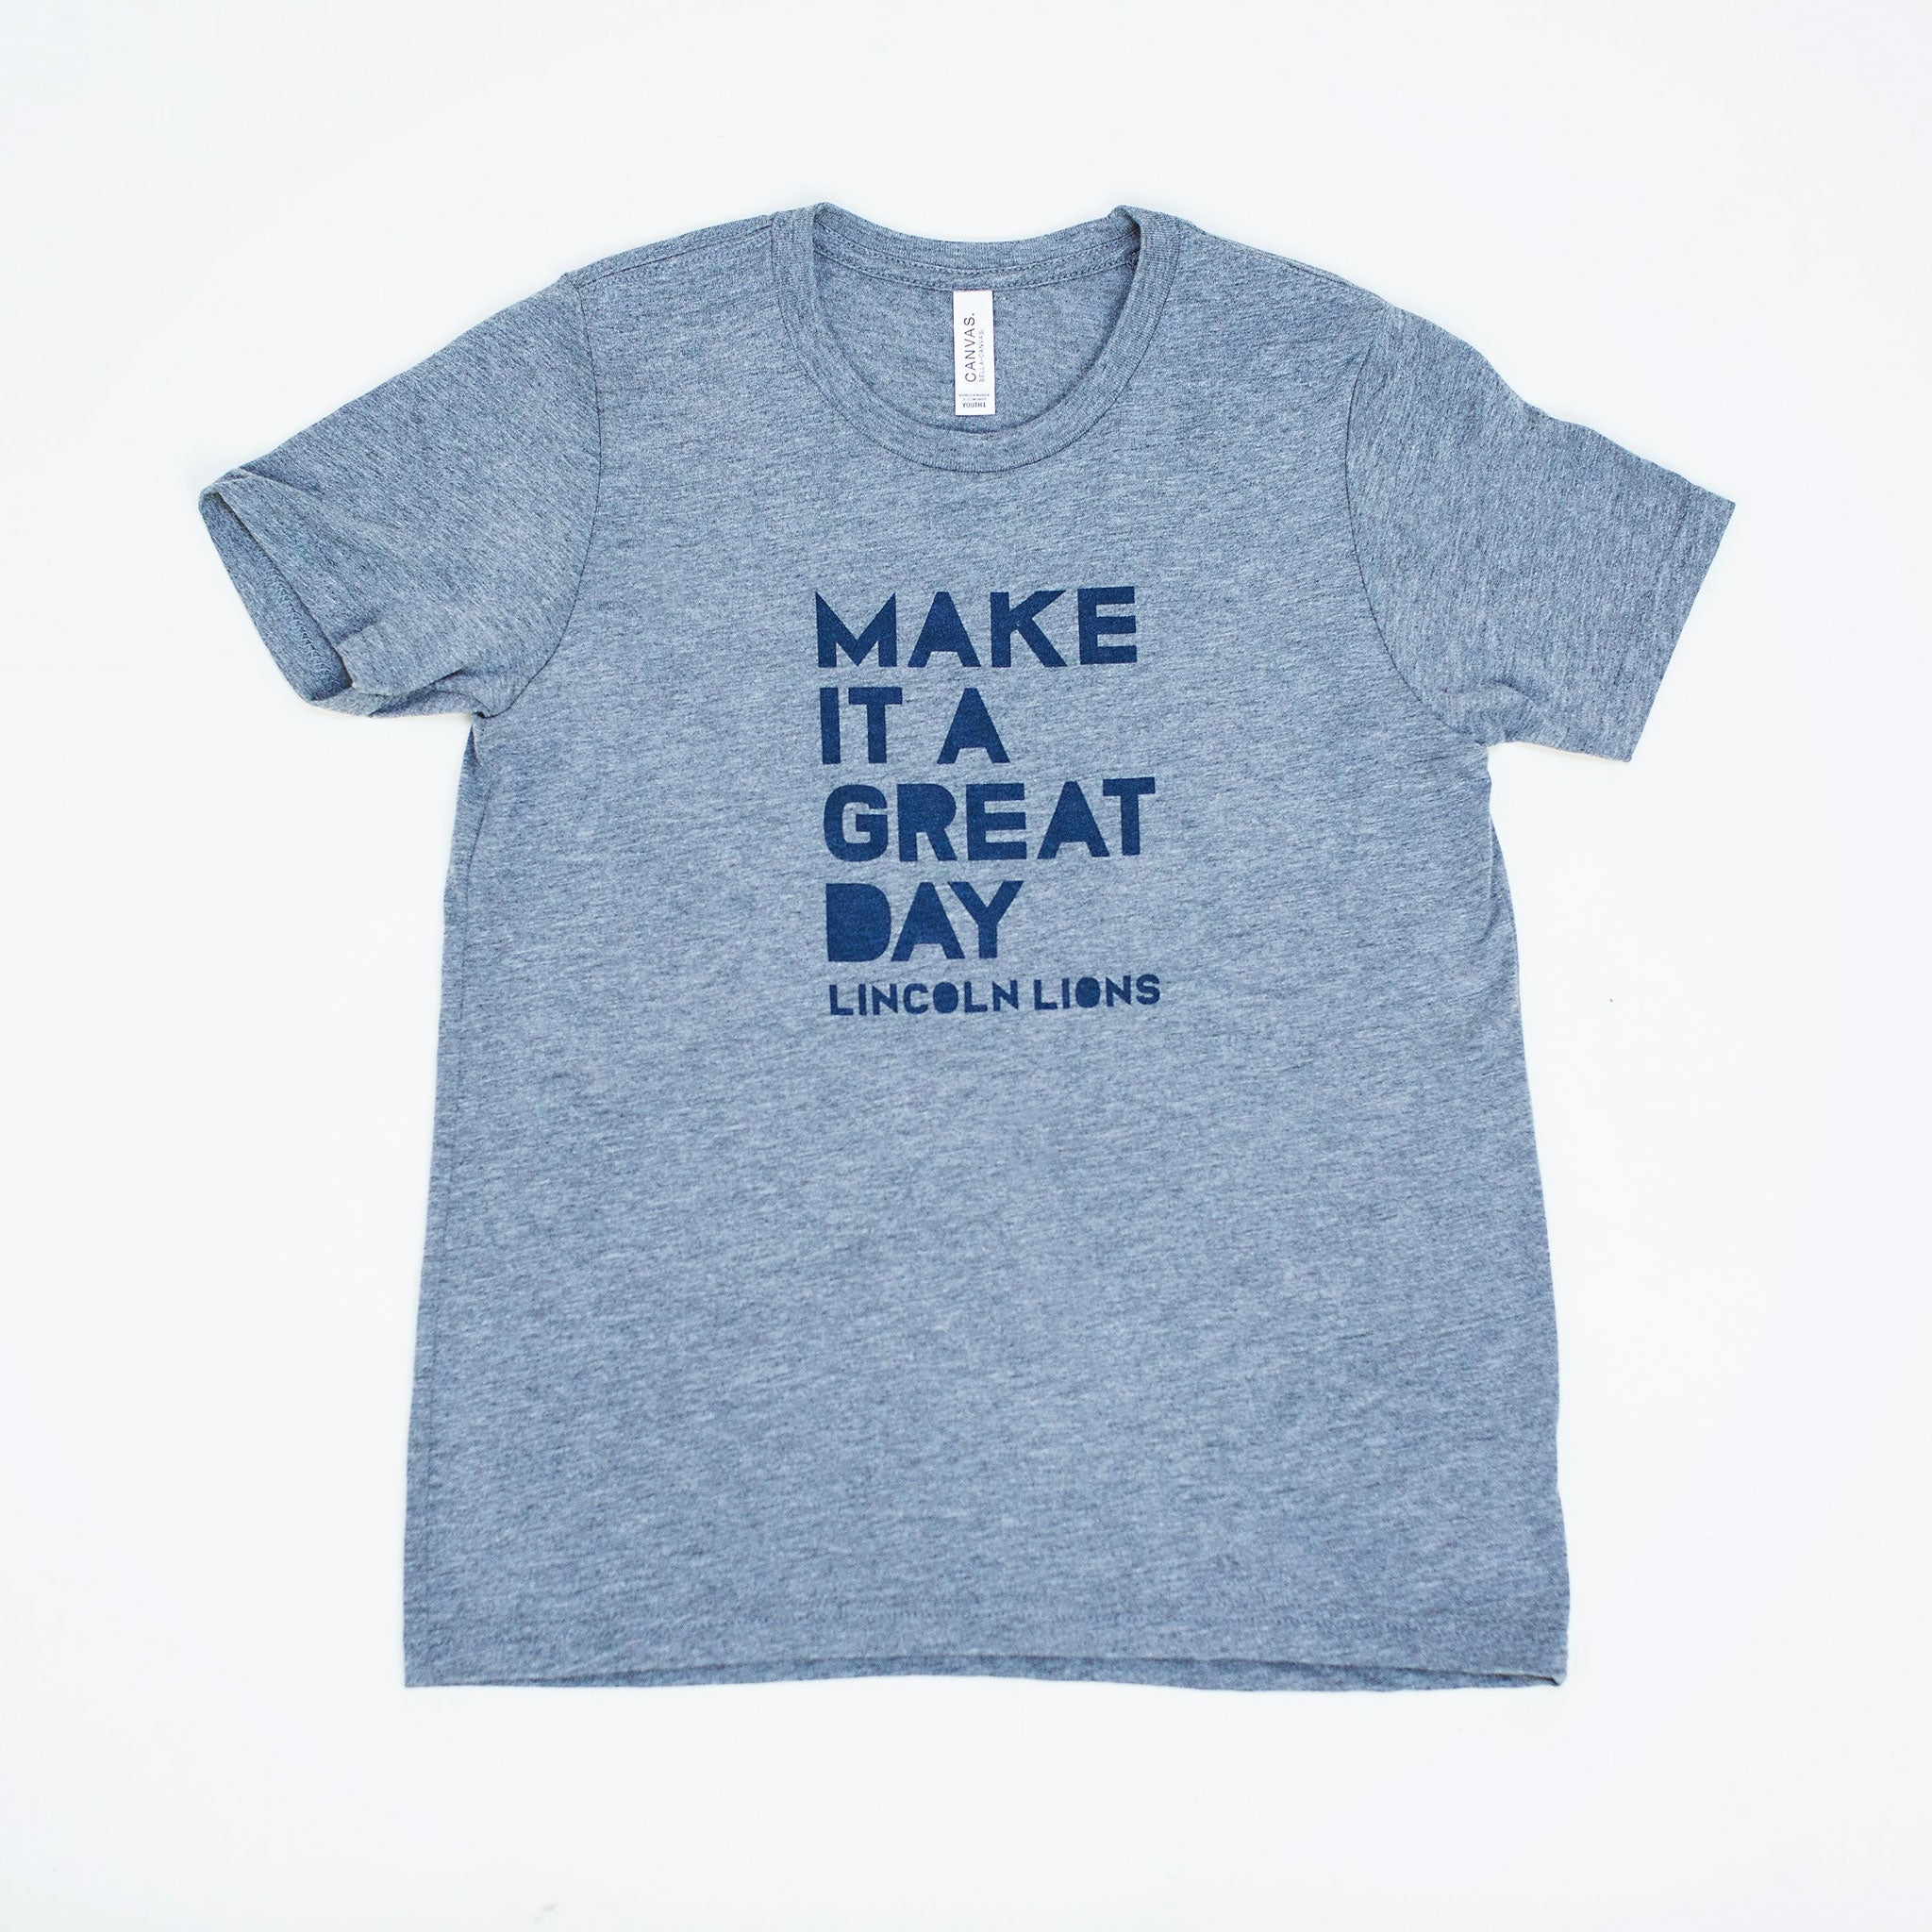 Lincoln Youth S/S Make It A Great Day Tee